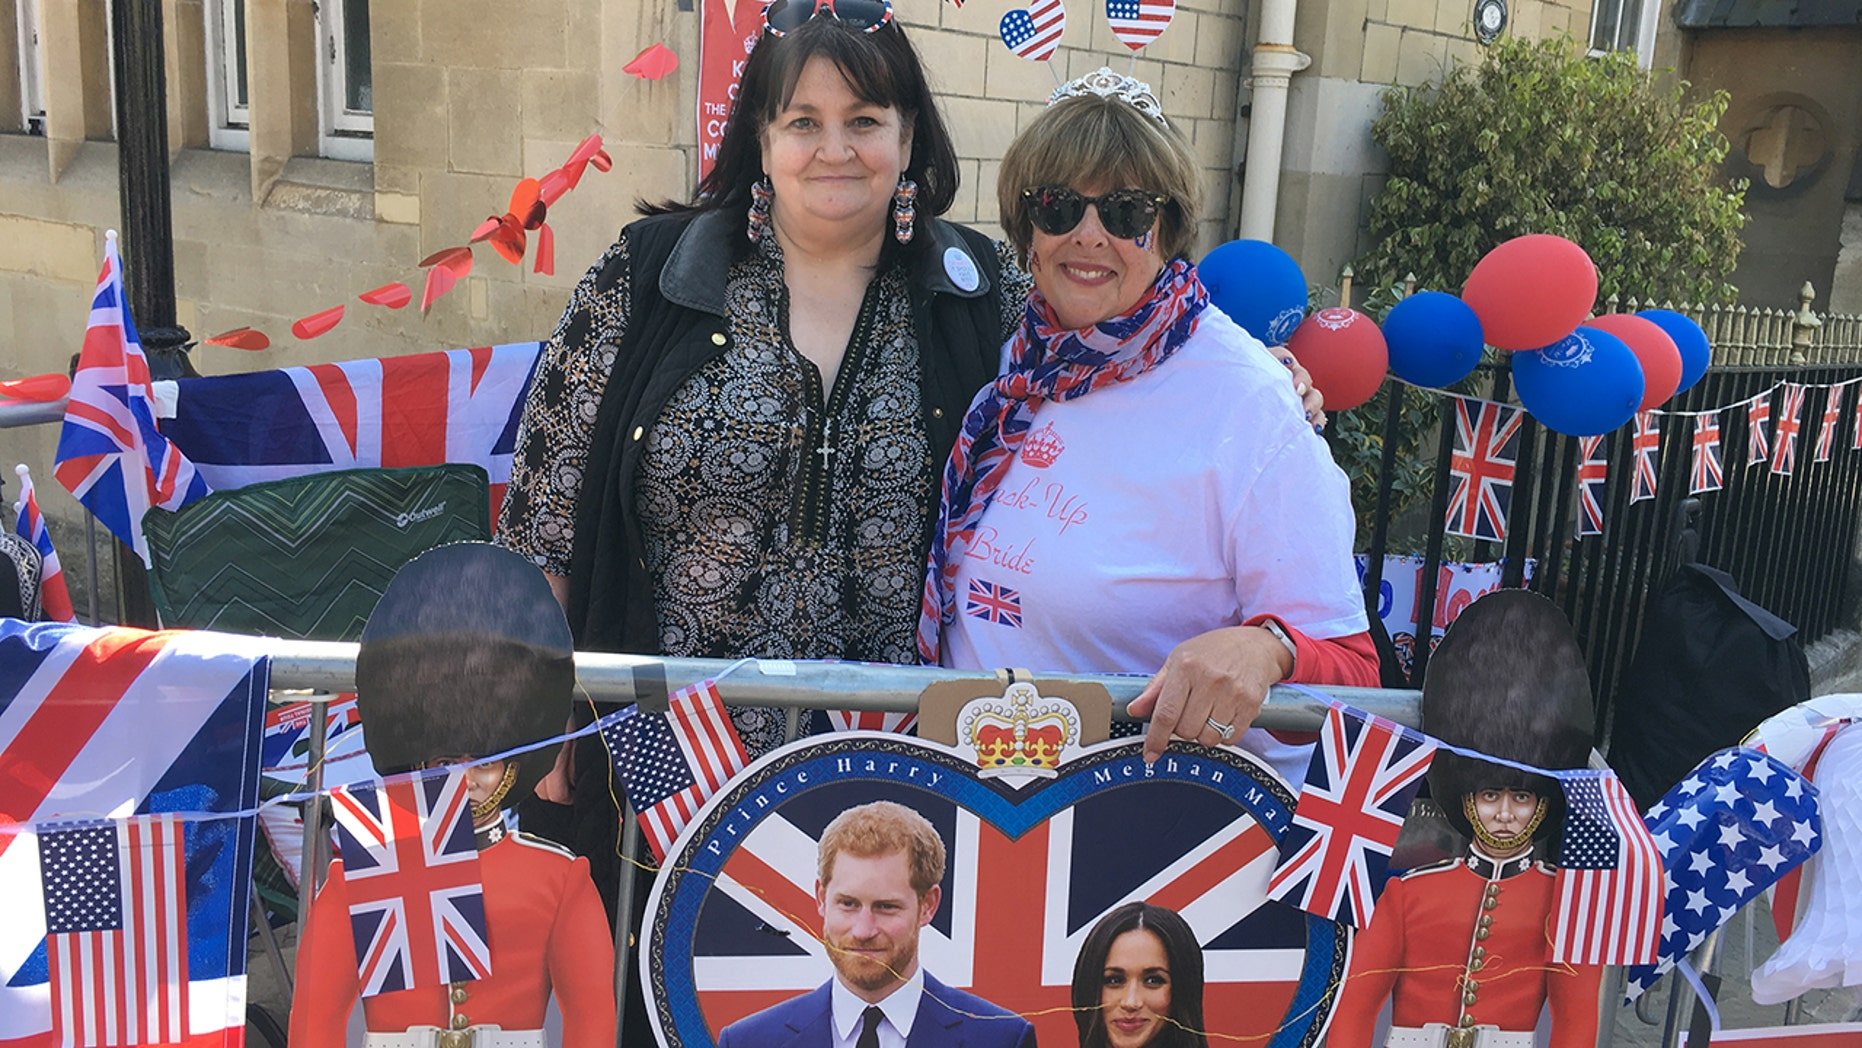 Faith Nicholson, left, at Donna Werner met and Prince William and Kate Middleton's wedding in 2011 and have reunited to camp out on the streets ahead of Prince Harry's wedding to Meghan Markle on Saturday.